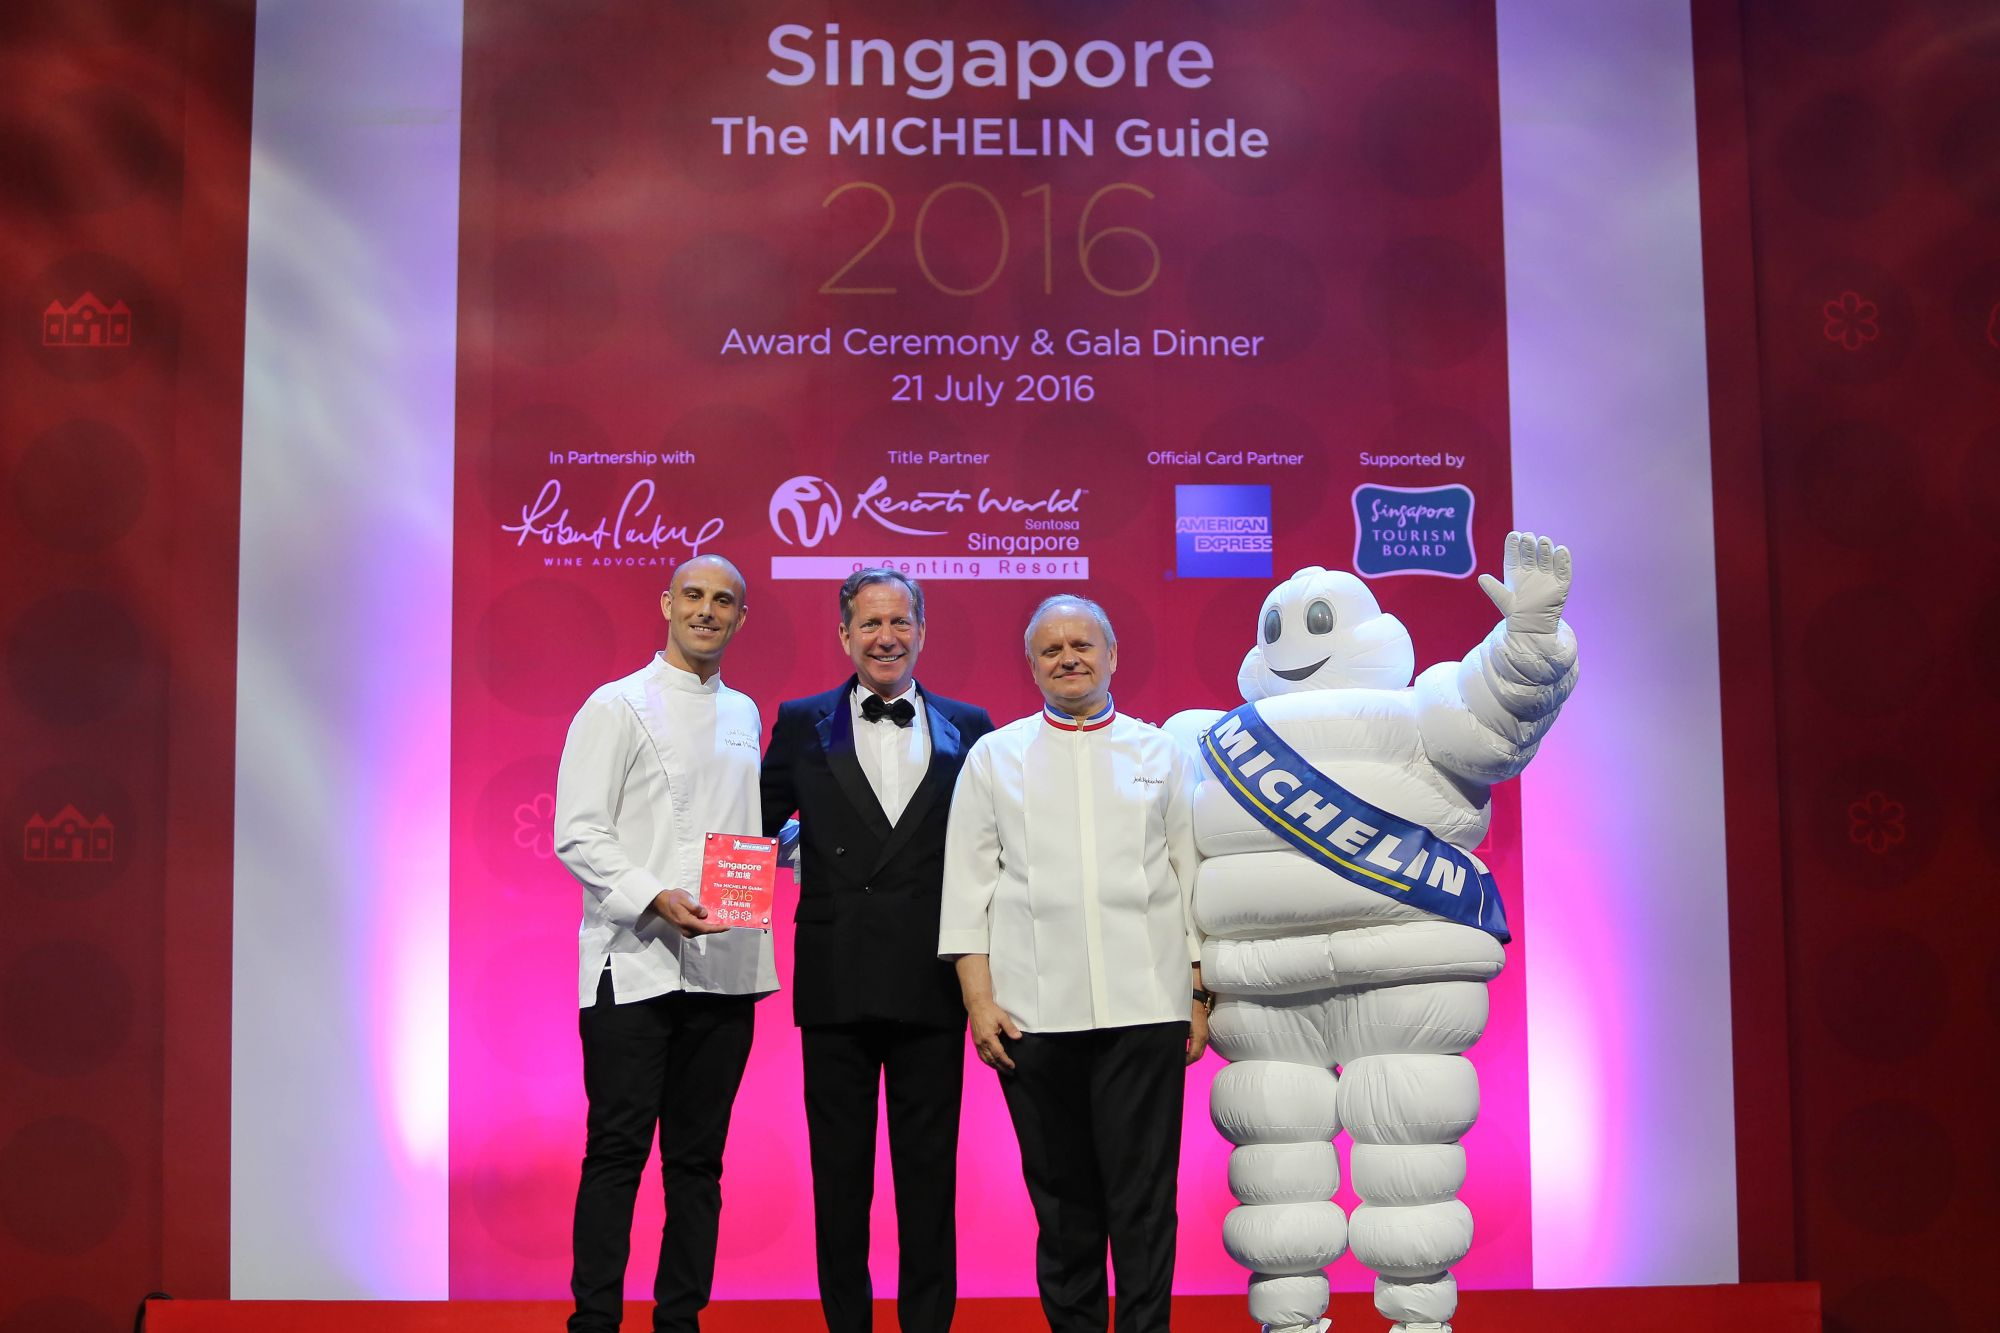 What Can We Expect From The Michelin Guide Singapore 2017?